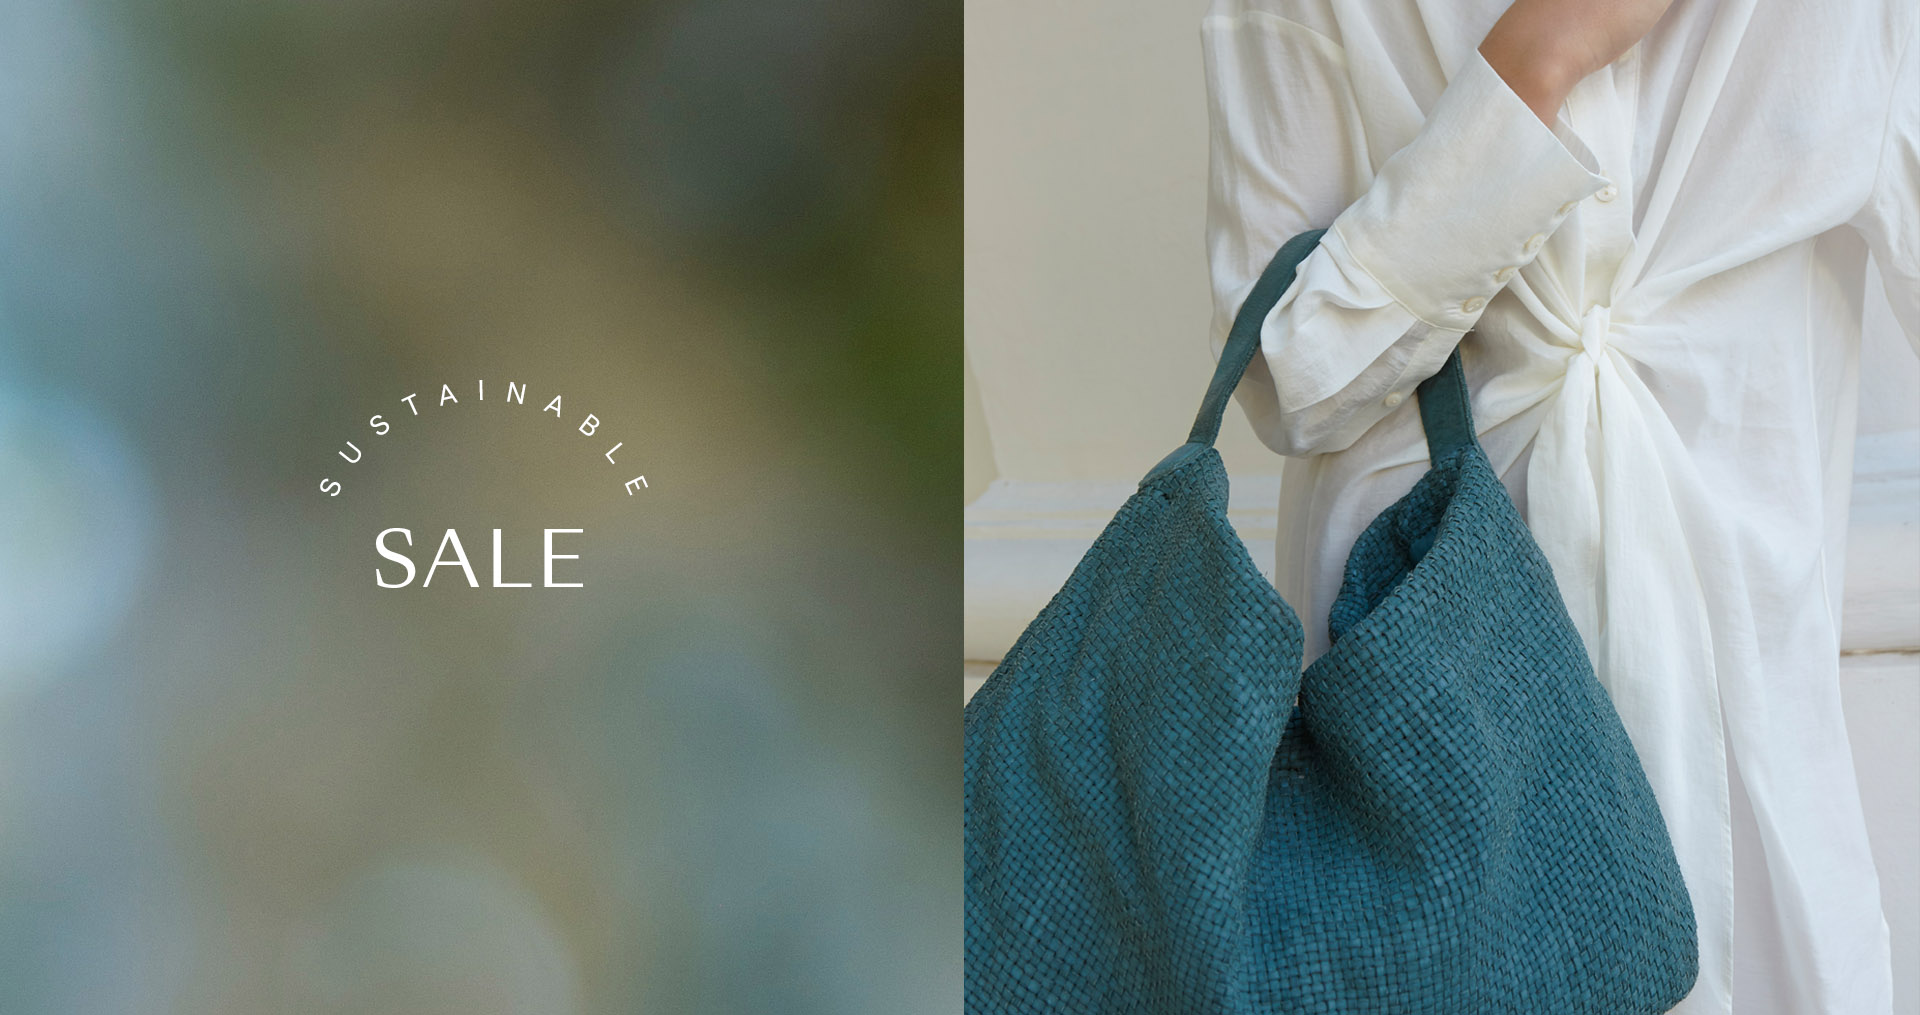 SUSTAINABLE SALE